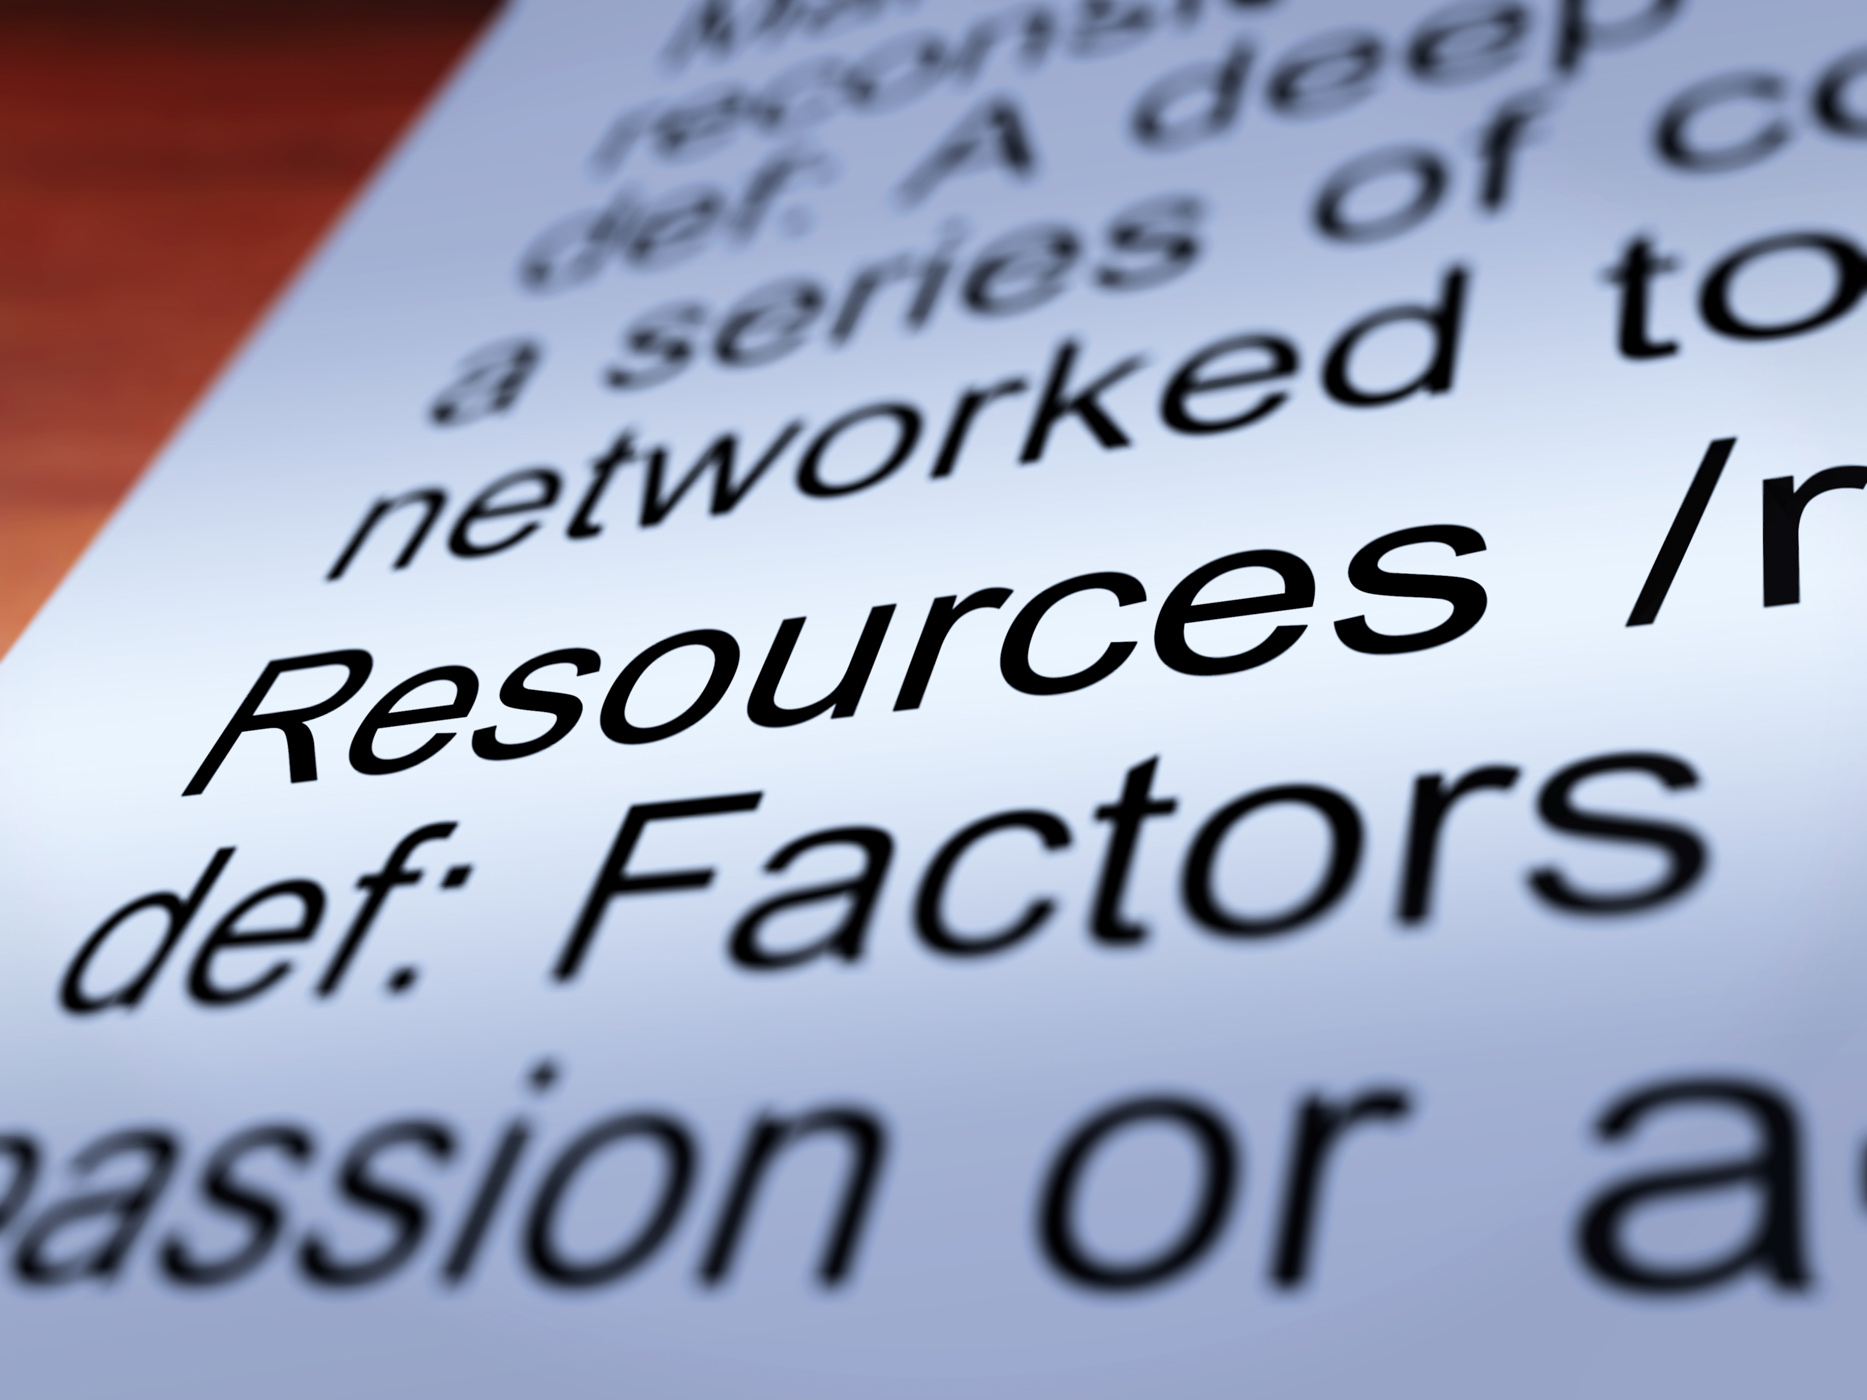 Resources Definition Closeup Showing Materials And Assets, Resource, Resources, Staff, Supply, HQ Photo